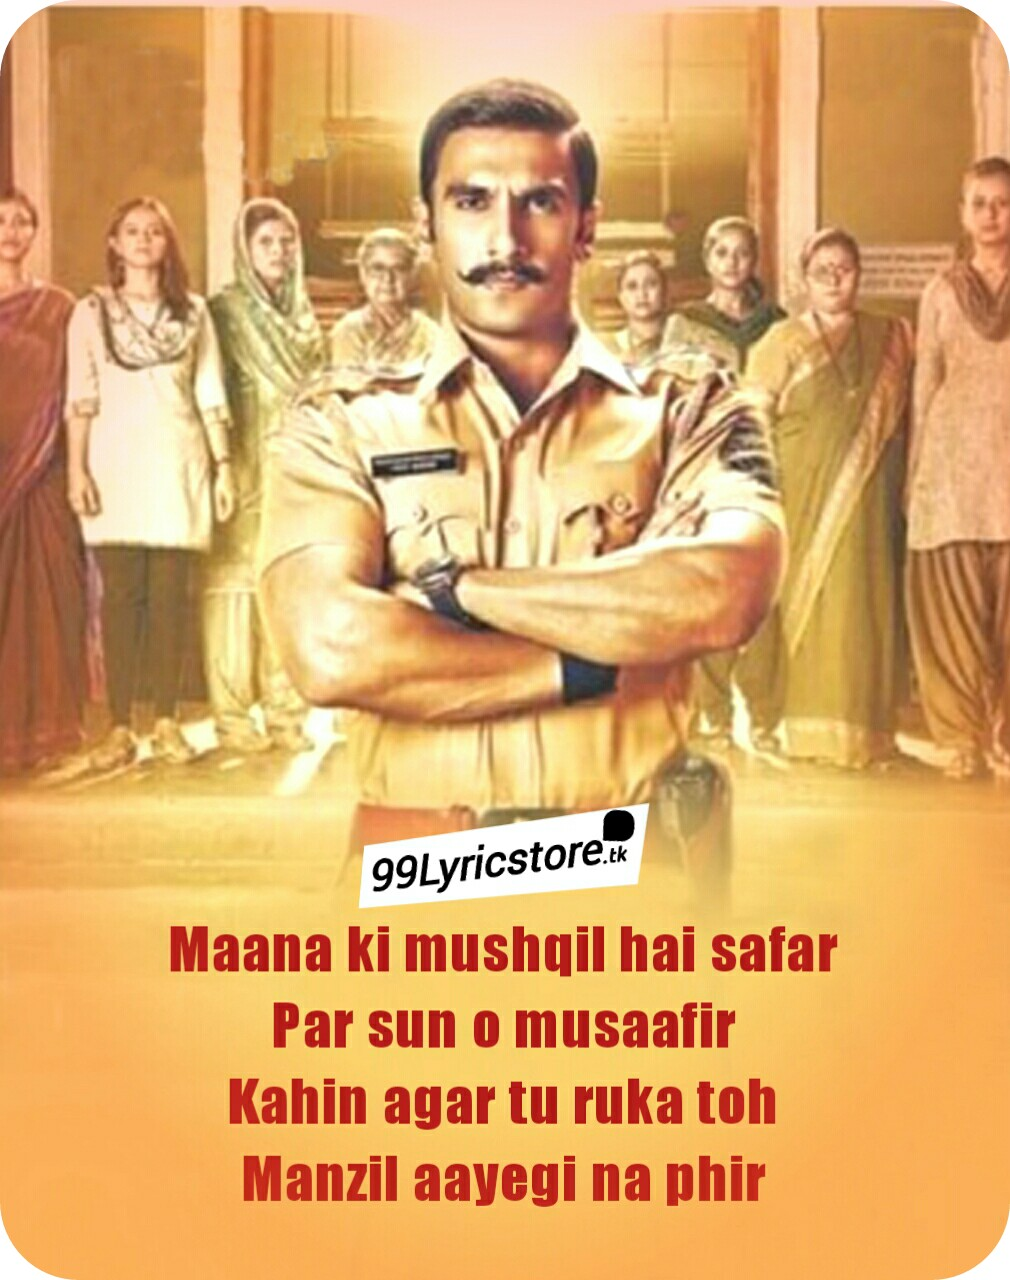 Simmba Movie Song Lyrics, Simmba Bandeya Rey Bandeya Song Lyrics, Arijit Singh Bandeya Rey Bandeya Simmba Lyrics, Bandeya Rey Bandeya Simmba Song Lyrics, Asses Kaur Song Lyrics, Bandeya Rey Bandeya Song images, Bandeya Rey Bandeya Ranveer Singh Song Lyrics, Arijit Singh Song Bandeya Rey Bandeya Lyrics, Bandeya Rey Bandeya Simmba Movie Song, Latest Bollywood Movie Song 2018